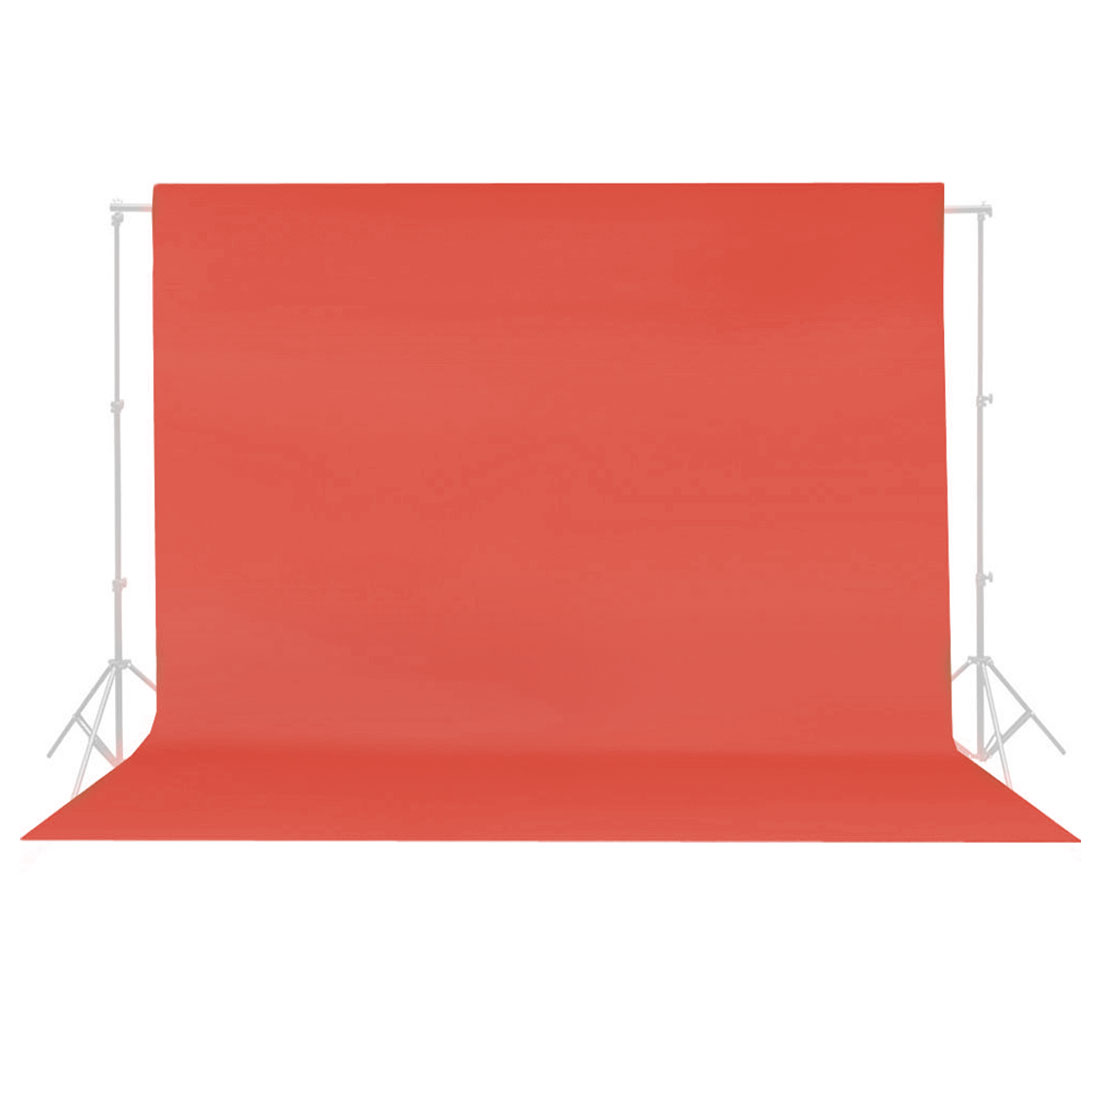 5Ftx10Ft Red Non-woven Fabric Photography Backdrop Background Cloth